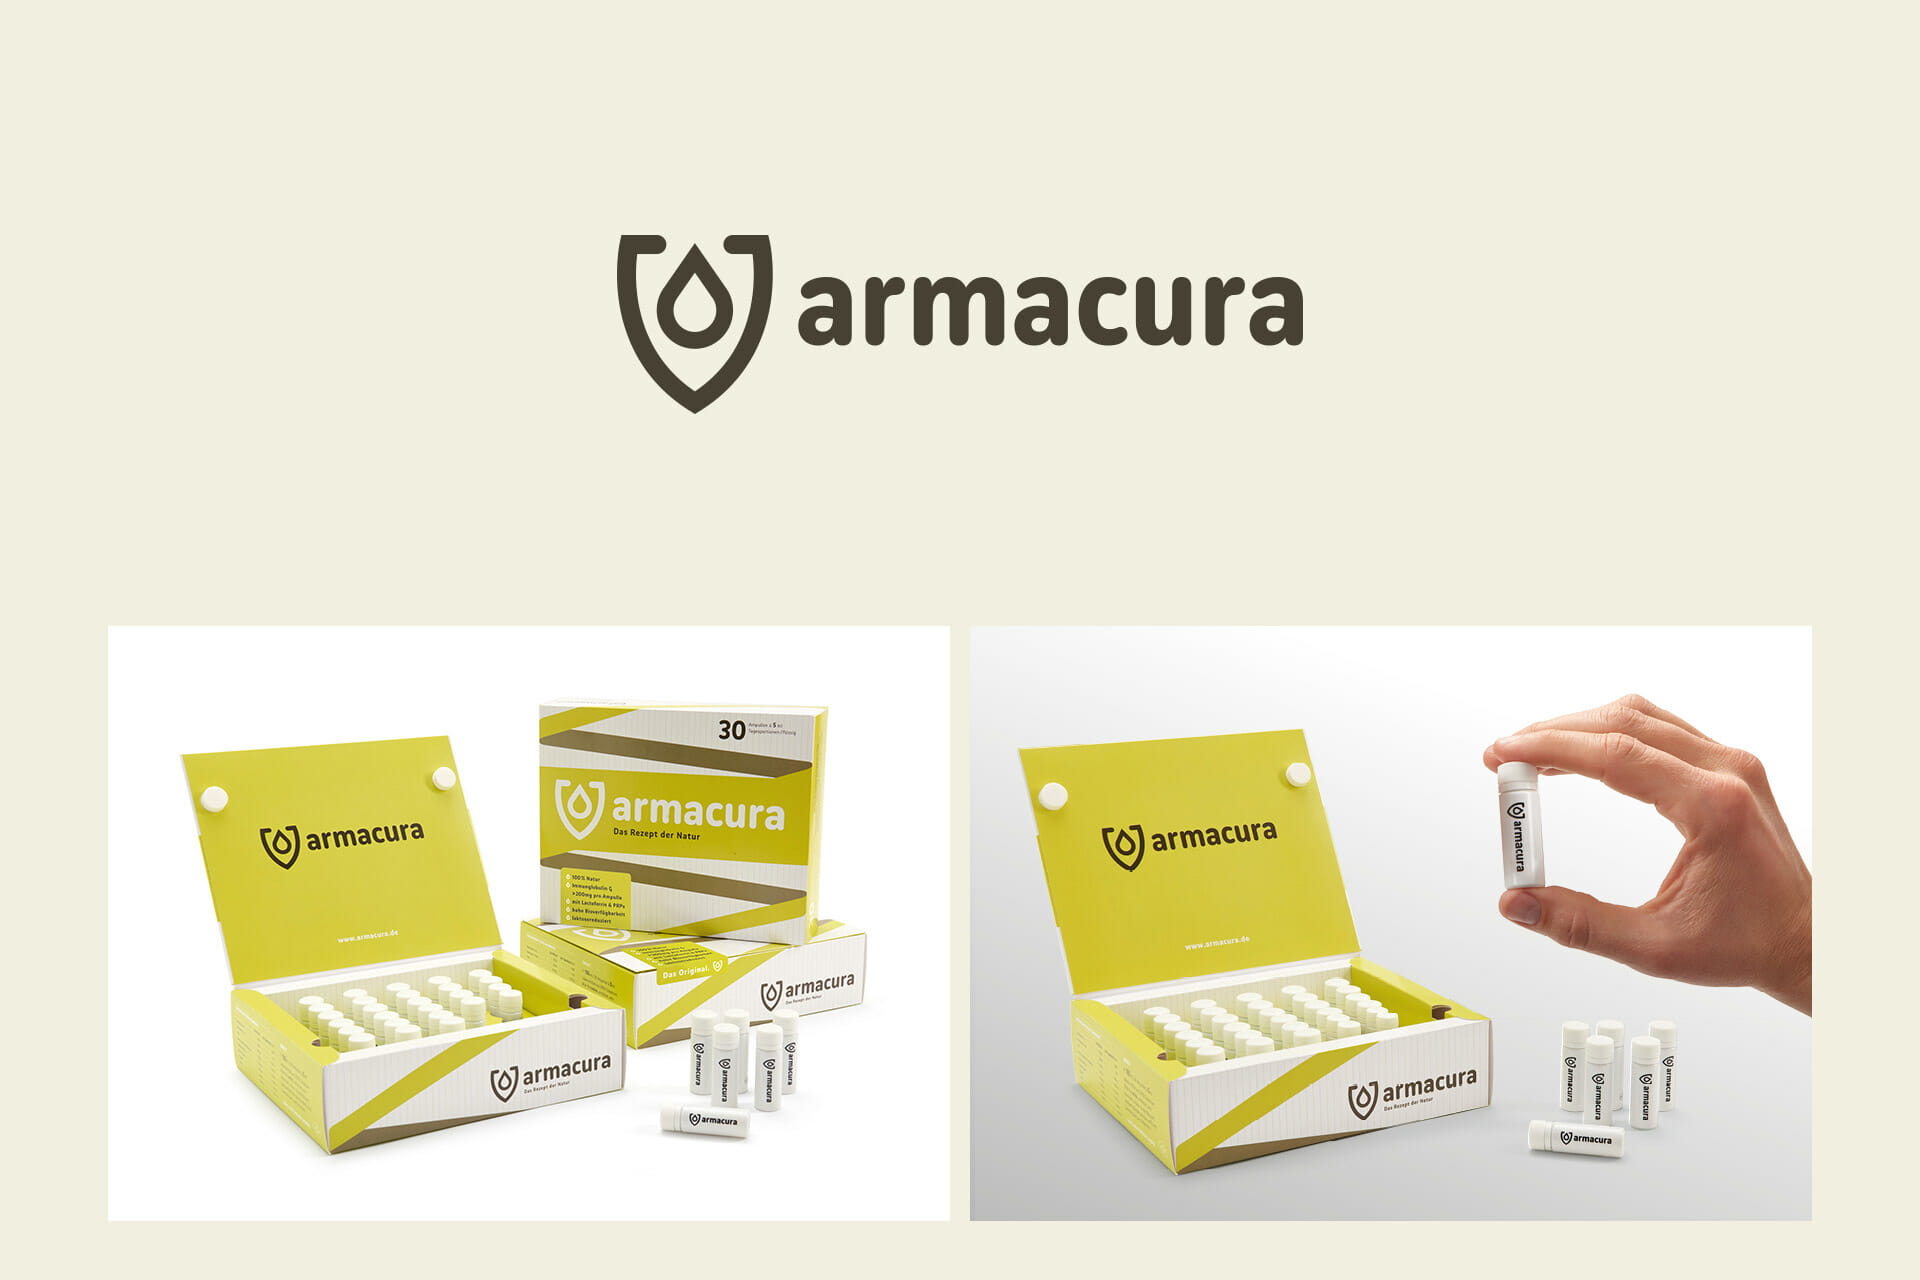 armacura Packaging offen mit Ampullen